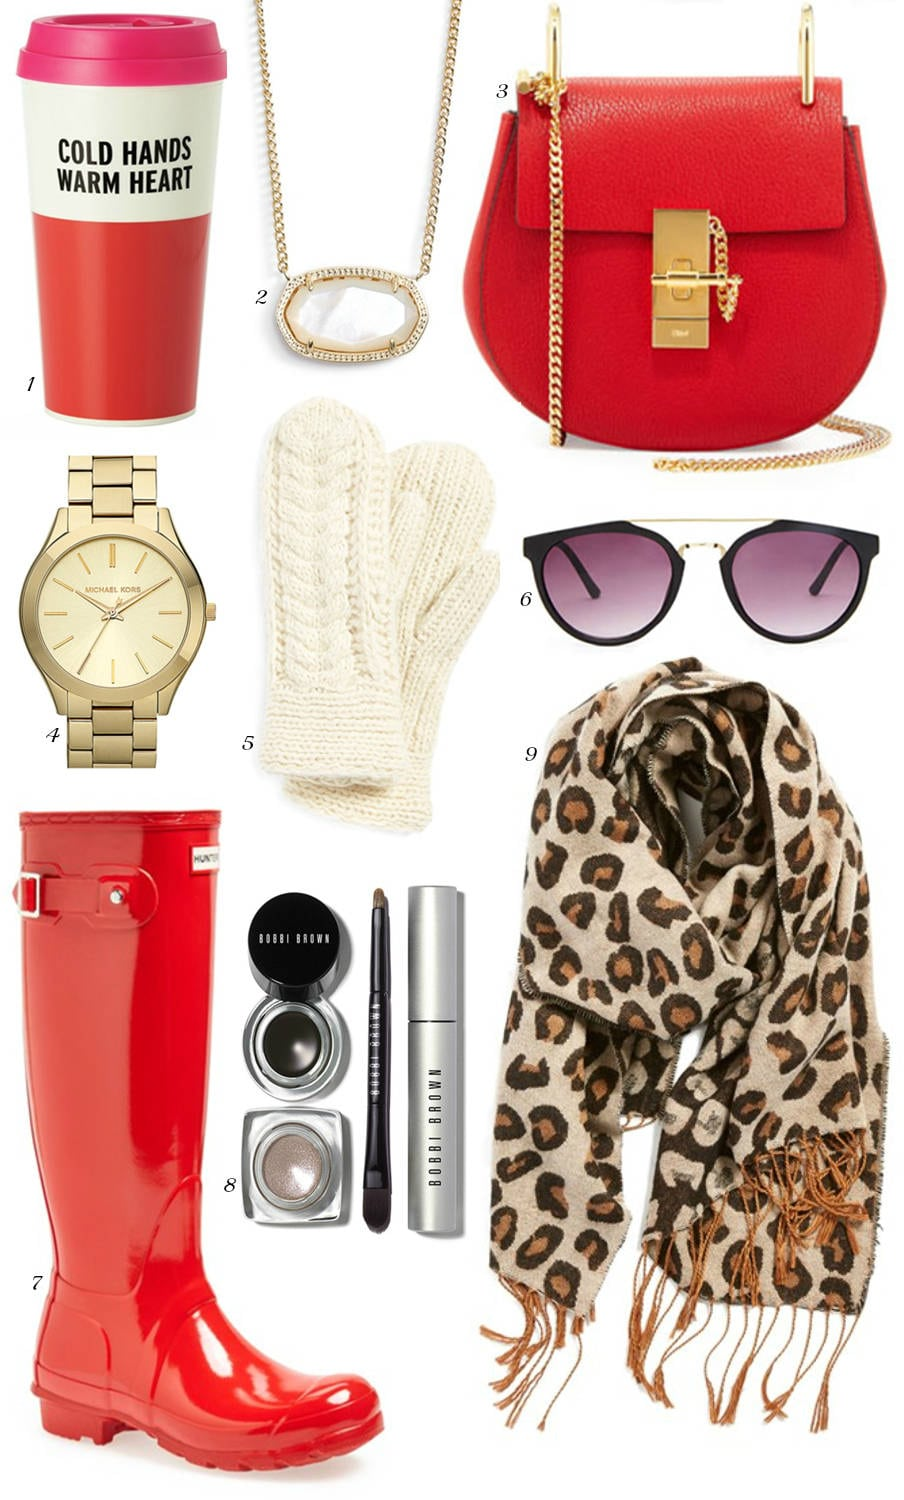 best gifts for teenagers | affordable gifts for her | red hunter boots | Chloe designer bag | Kate Spade cold hands warm heart | gifts she will love | Christmas gifts | Michelle Kehoe of Mash Elle